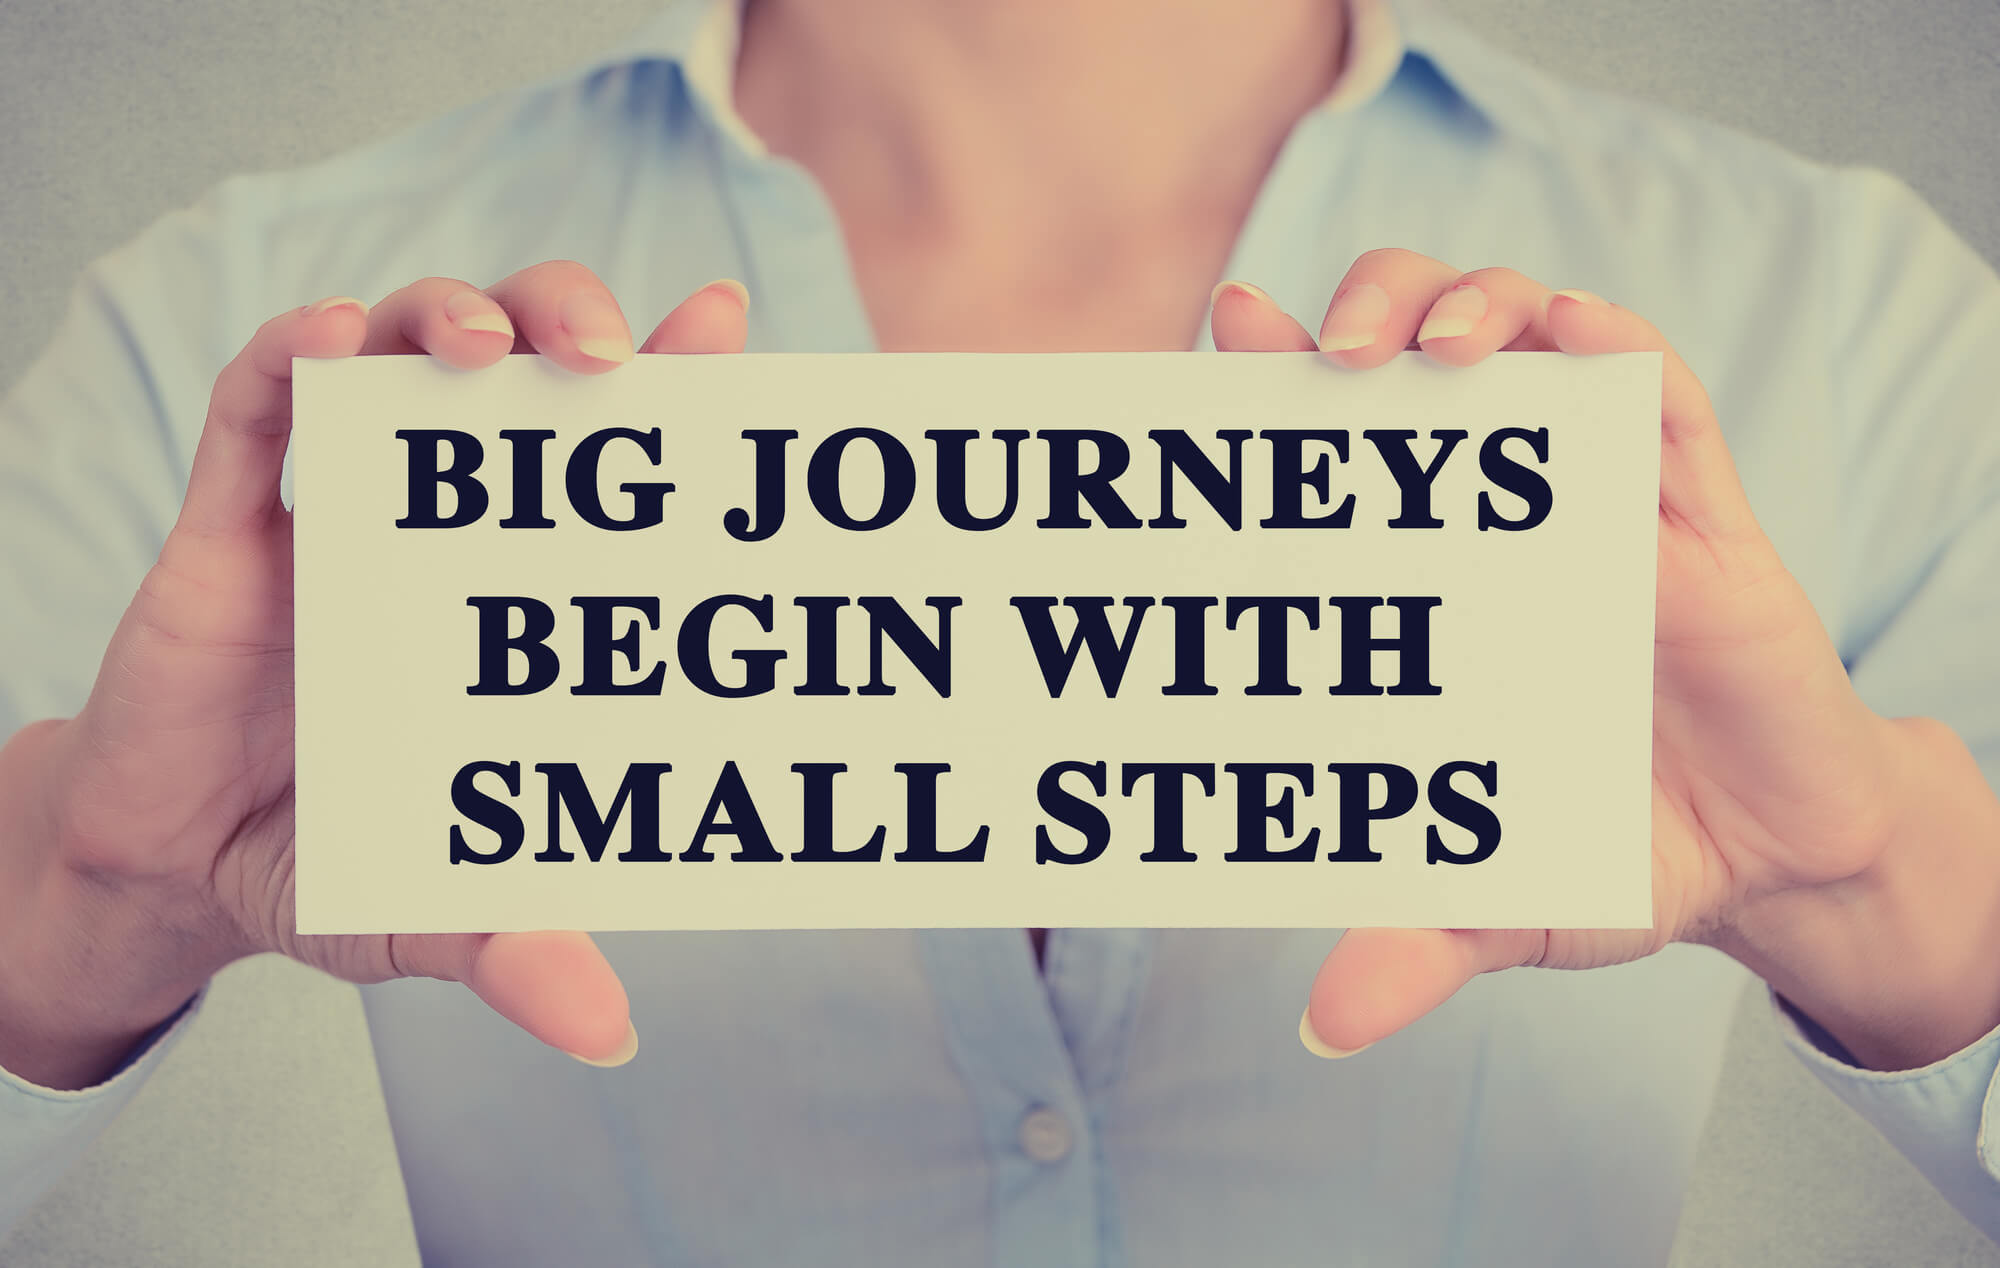 Big journey - small steps